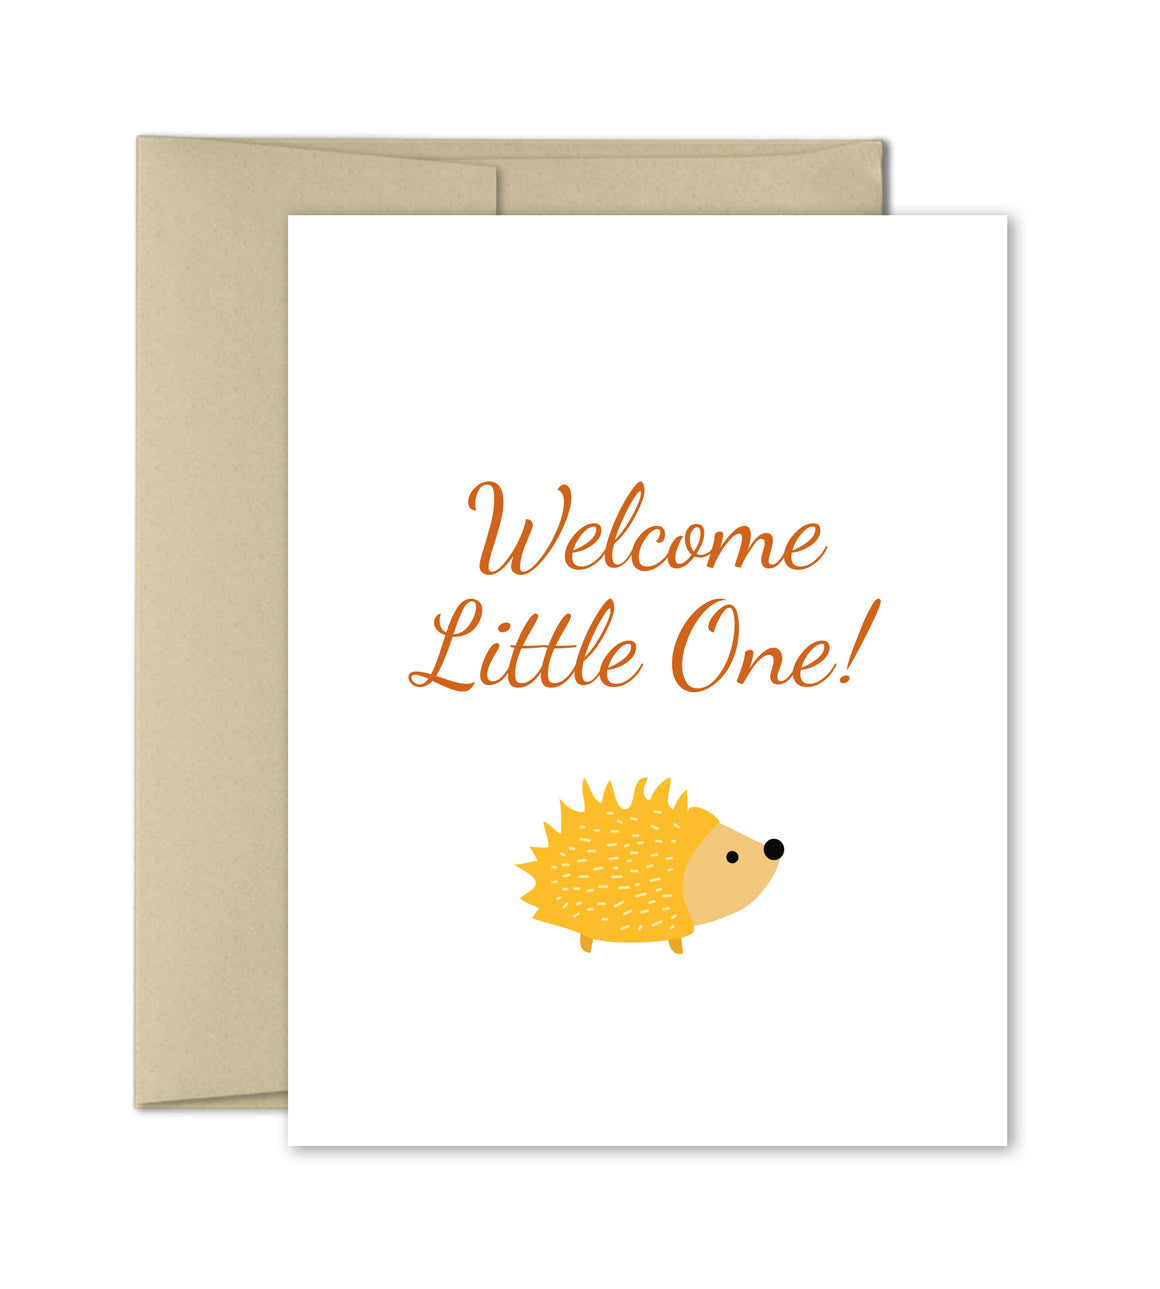 Welcome Little one- New Baby Congrats Card by The Imagination Spot - The Imagination Spot